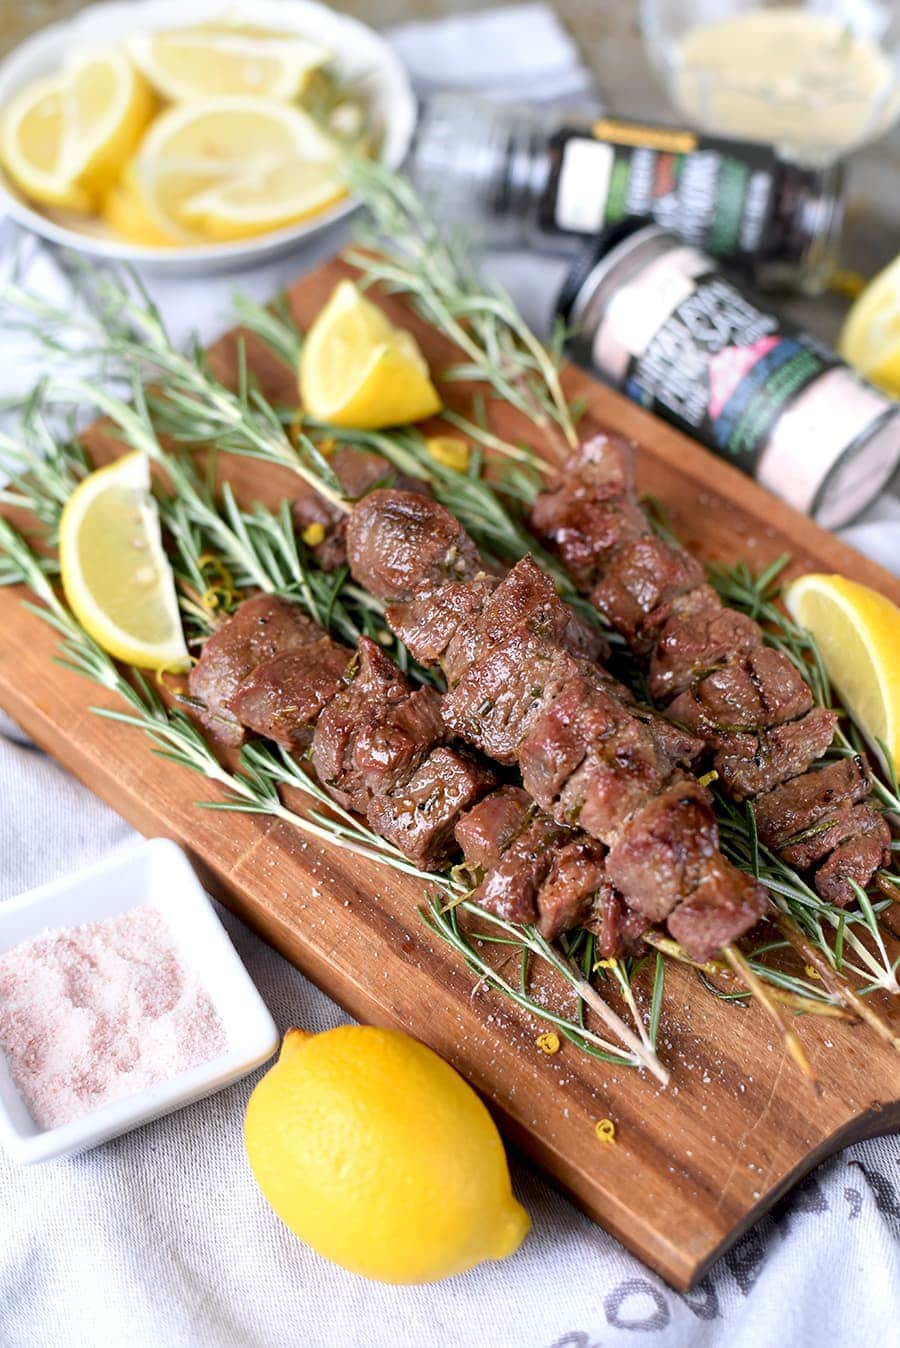 It's easy to #GrillTheGoodness when you have classic flavors like rosemary, lemon and Frontier Co-op's Himalayan Pink Salt. Bite into bright, succulent Grilled Rosemary Lamb Skewers that are fork-tender and delicious. #CookWithPurpose #sponsored #ad